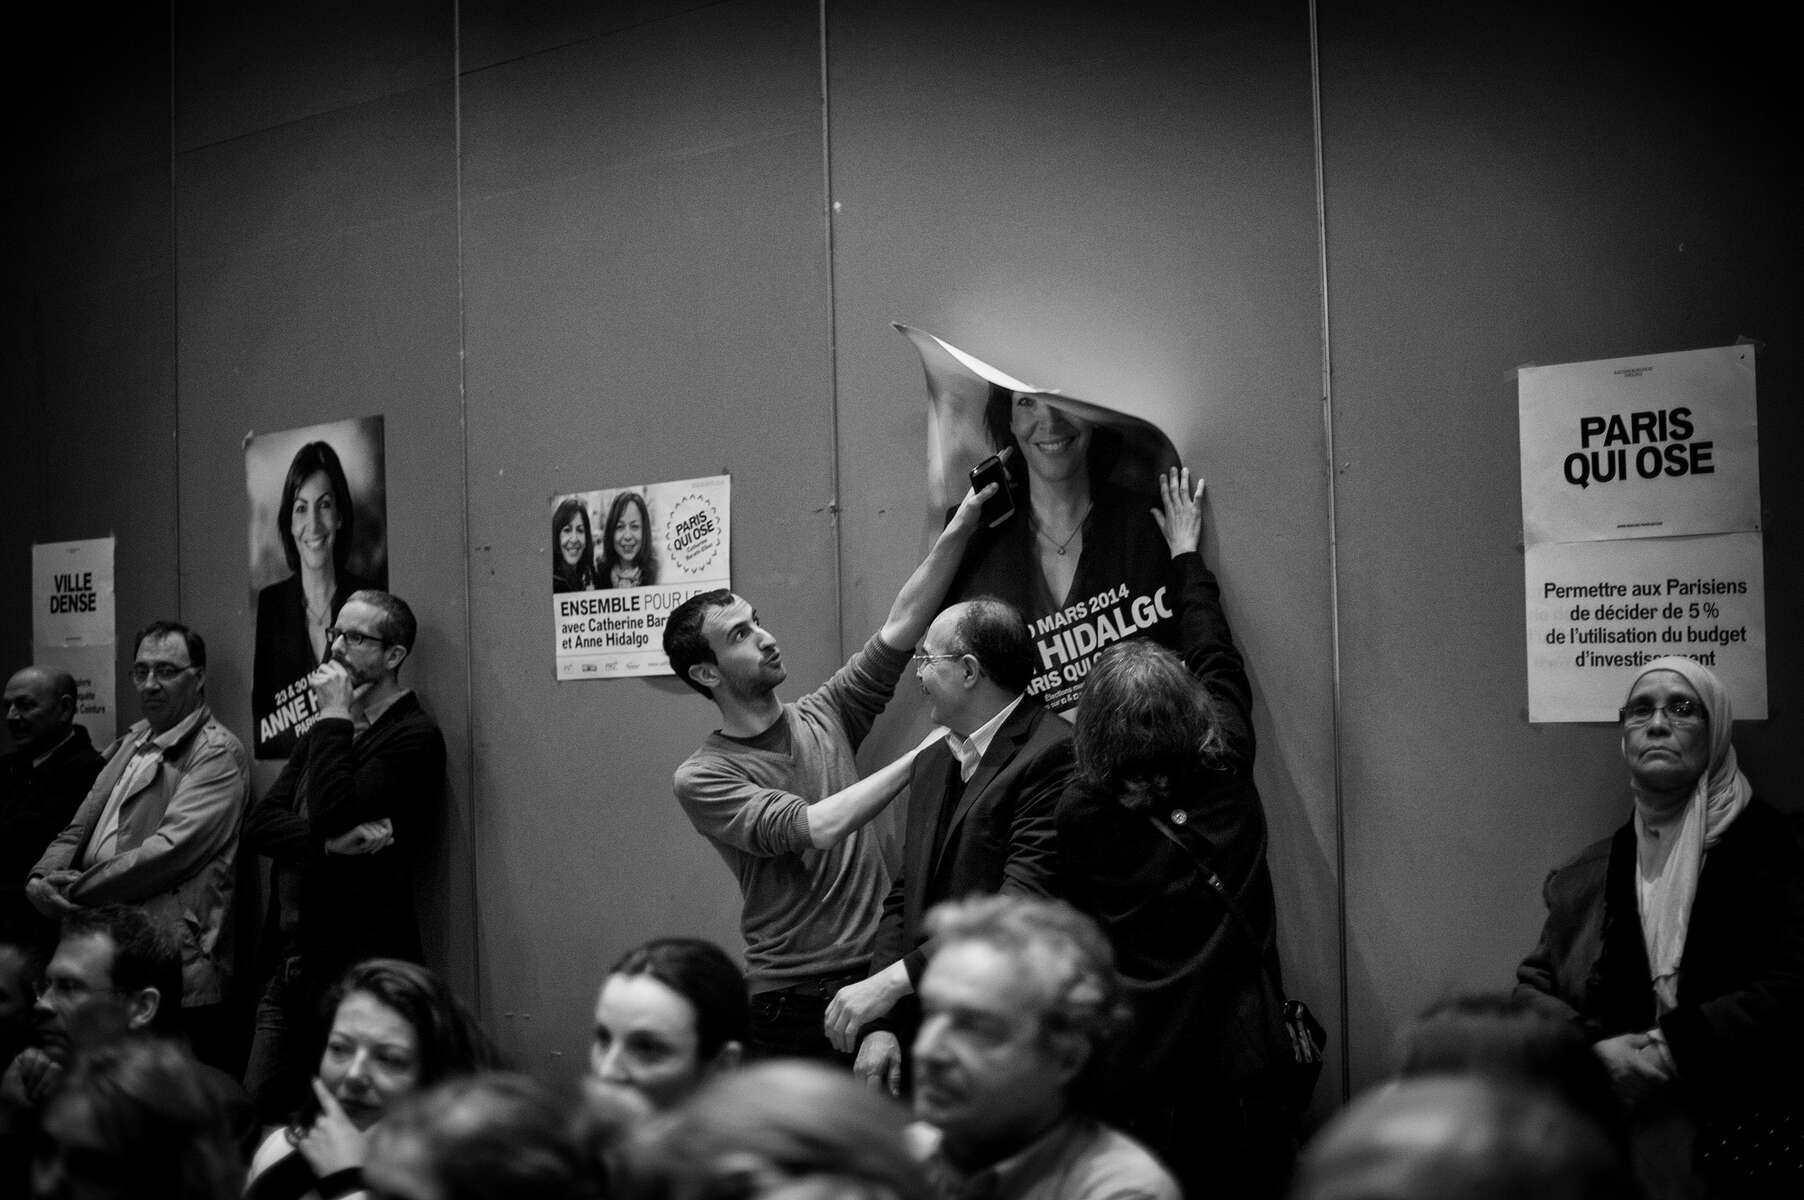 March 11, 2014.  PARIS, FRANCE- Supporters of mayoral candidate Anne Hidalgo try to keep a poster from falling as she speaks at a campaign event at Espace Reuilly in Paris' 12th Quarter.  For the first time in France's history, Paris will have a woman as a mayor - either Socialist Anne Hidalgo or Center-Right Nathalie Kosciusko-Morizet.  Photo by Scout Tufankjian